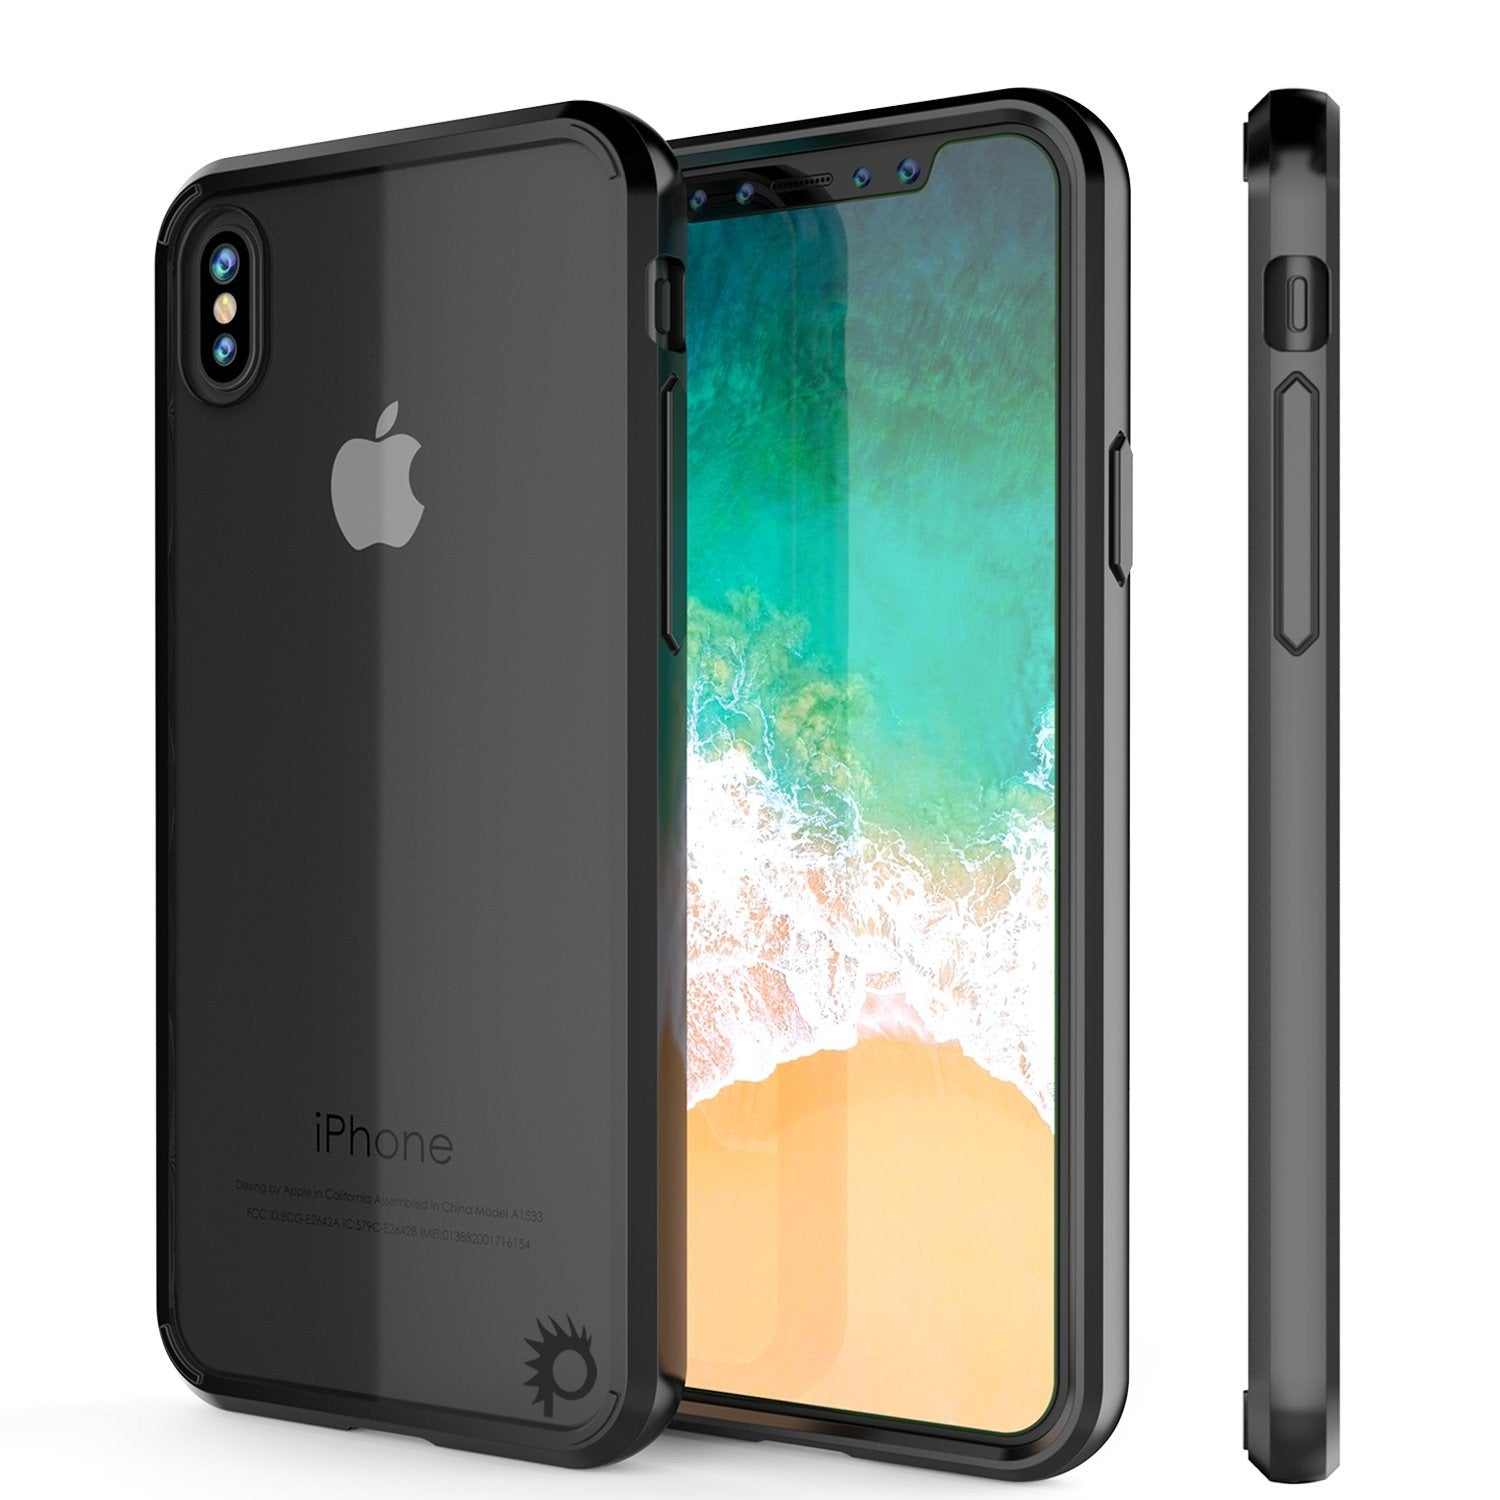 best website 0a9f4 290b8 iPhone X Case, PUNKcase [LUCID 2.0 Series] [Slim Fit] Armor Cover  W/Integrated Anti-Shock System [Black]